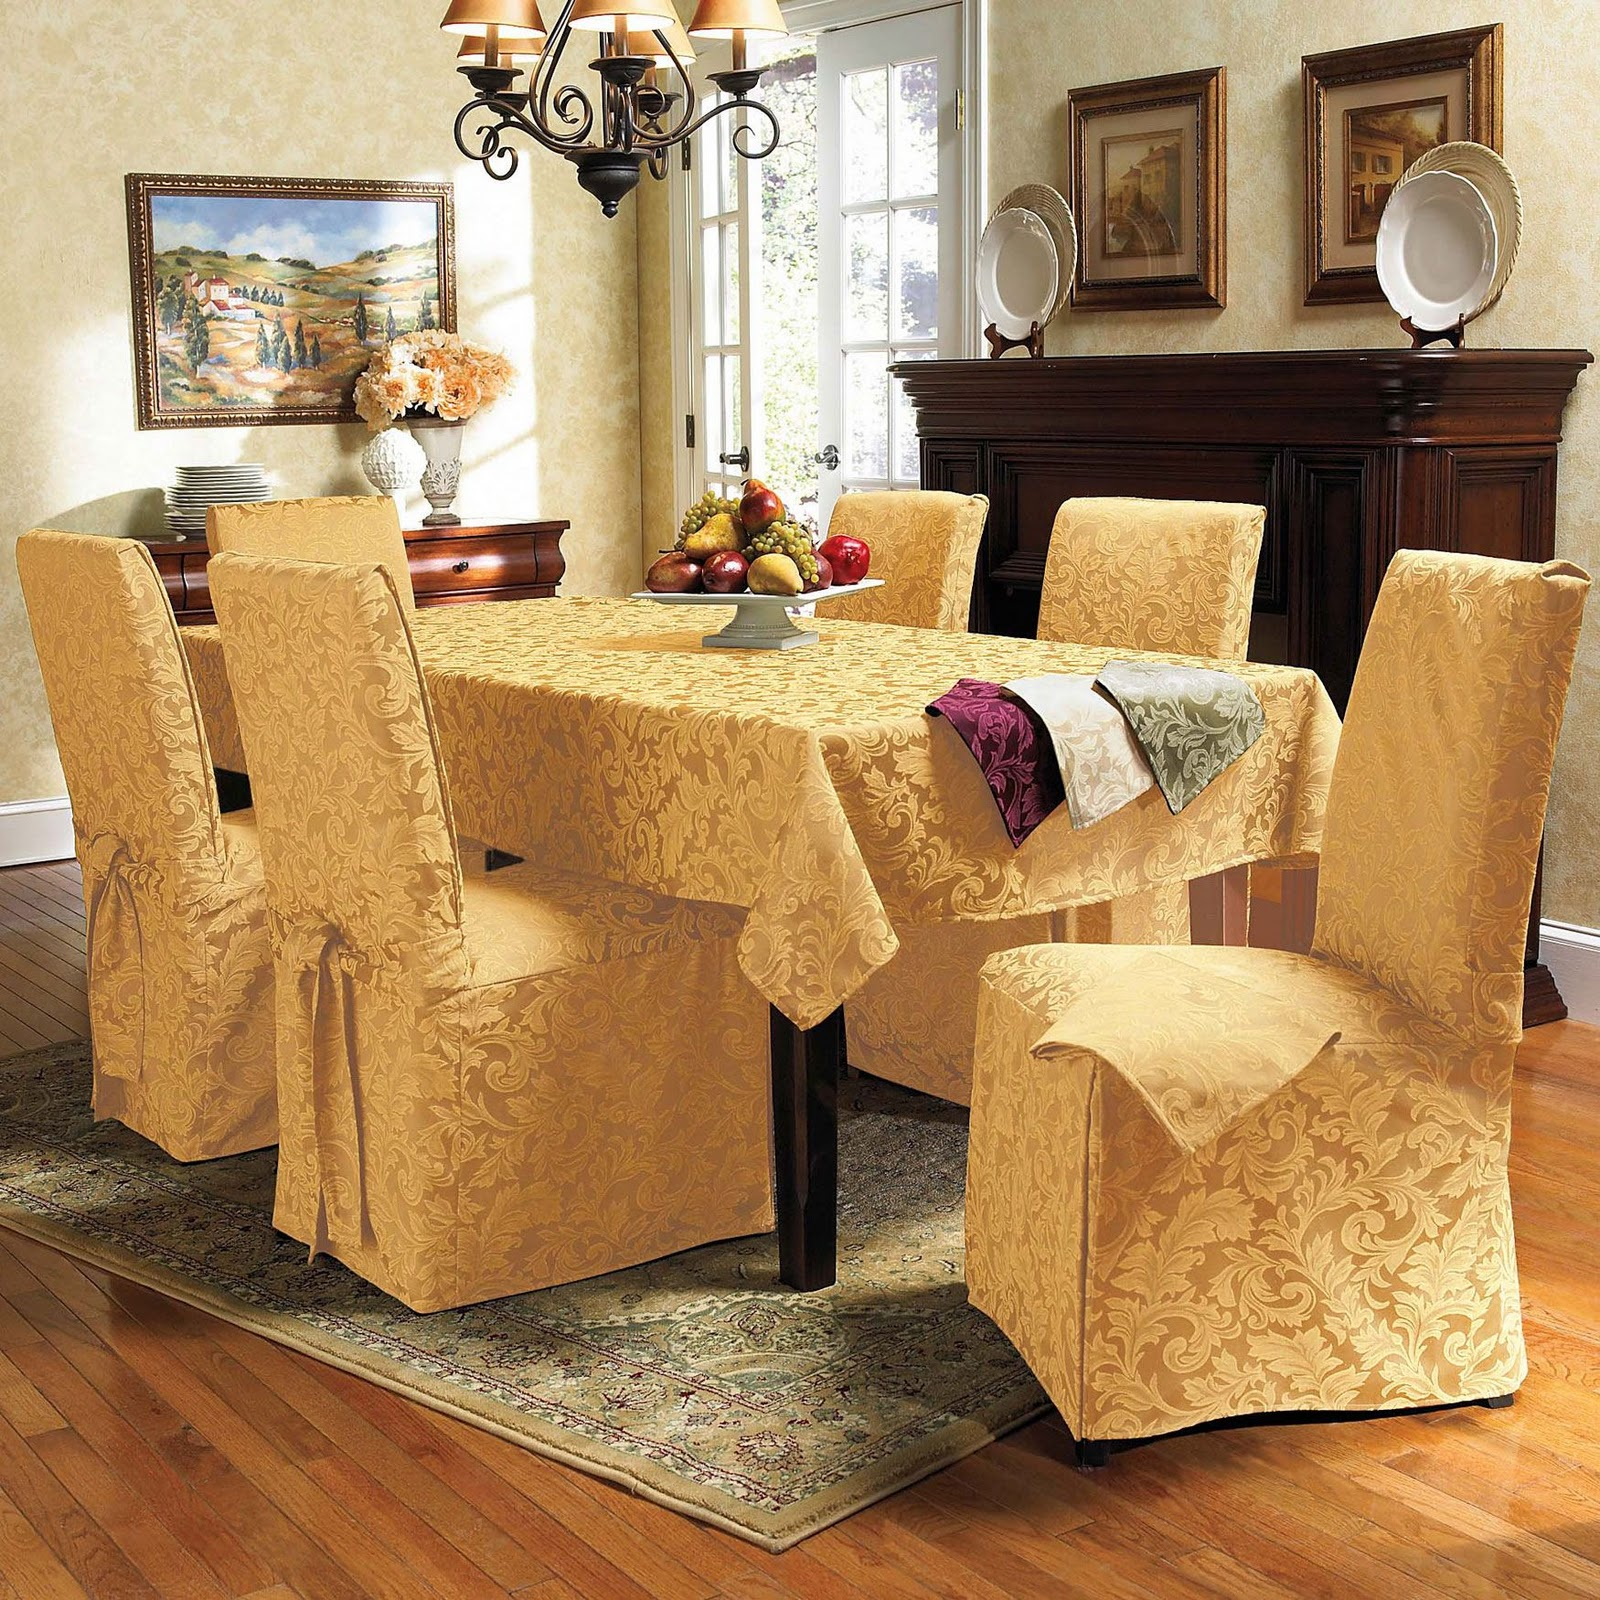 Dining room table chair covers photo 1 design your home